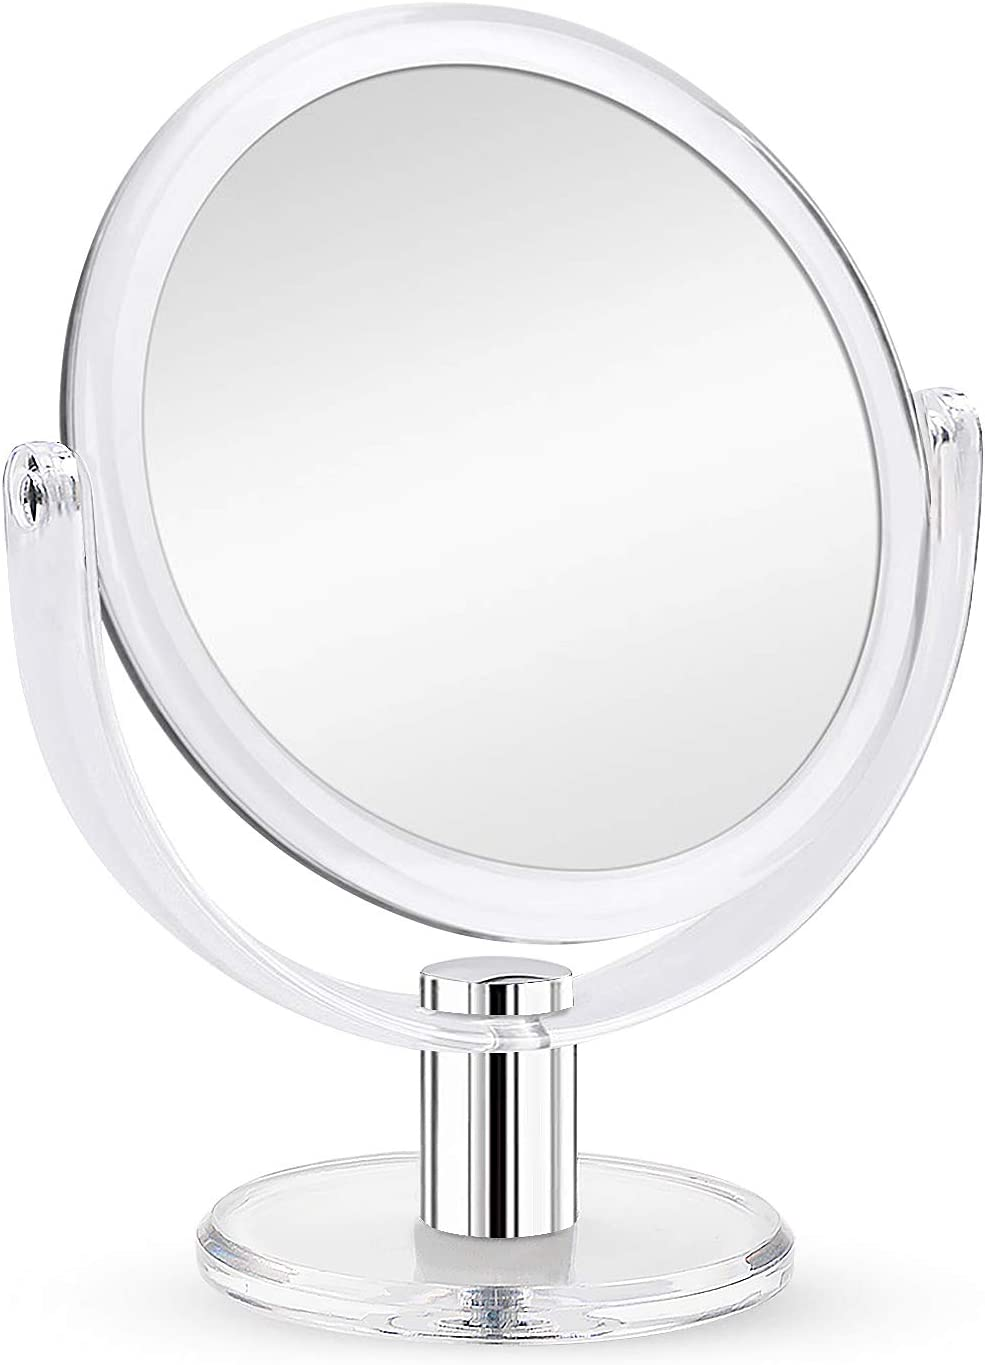 Amazon Com Fabuday Magnifying Makeup Mirror Double Sided 1x 10x Magnification Mirror Table Top Vanity Mirror For Home Bathrom Transparent